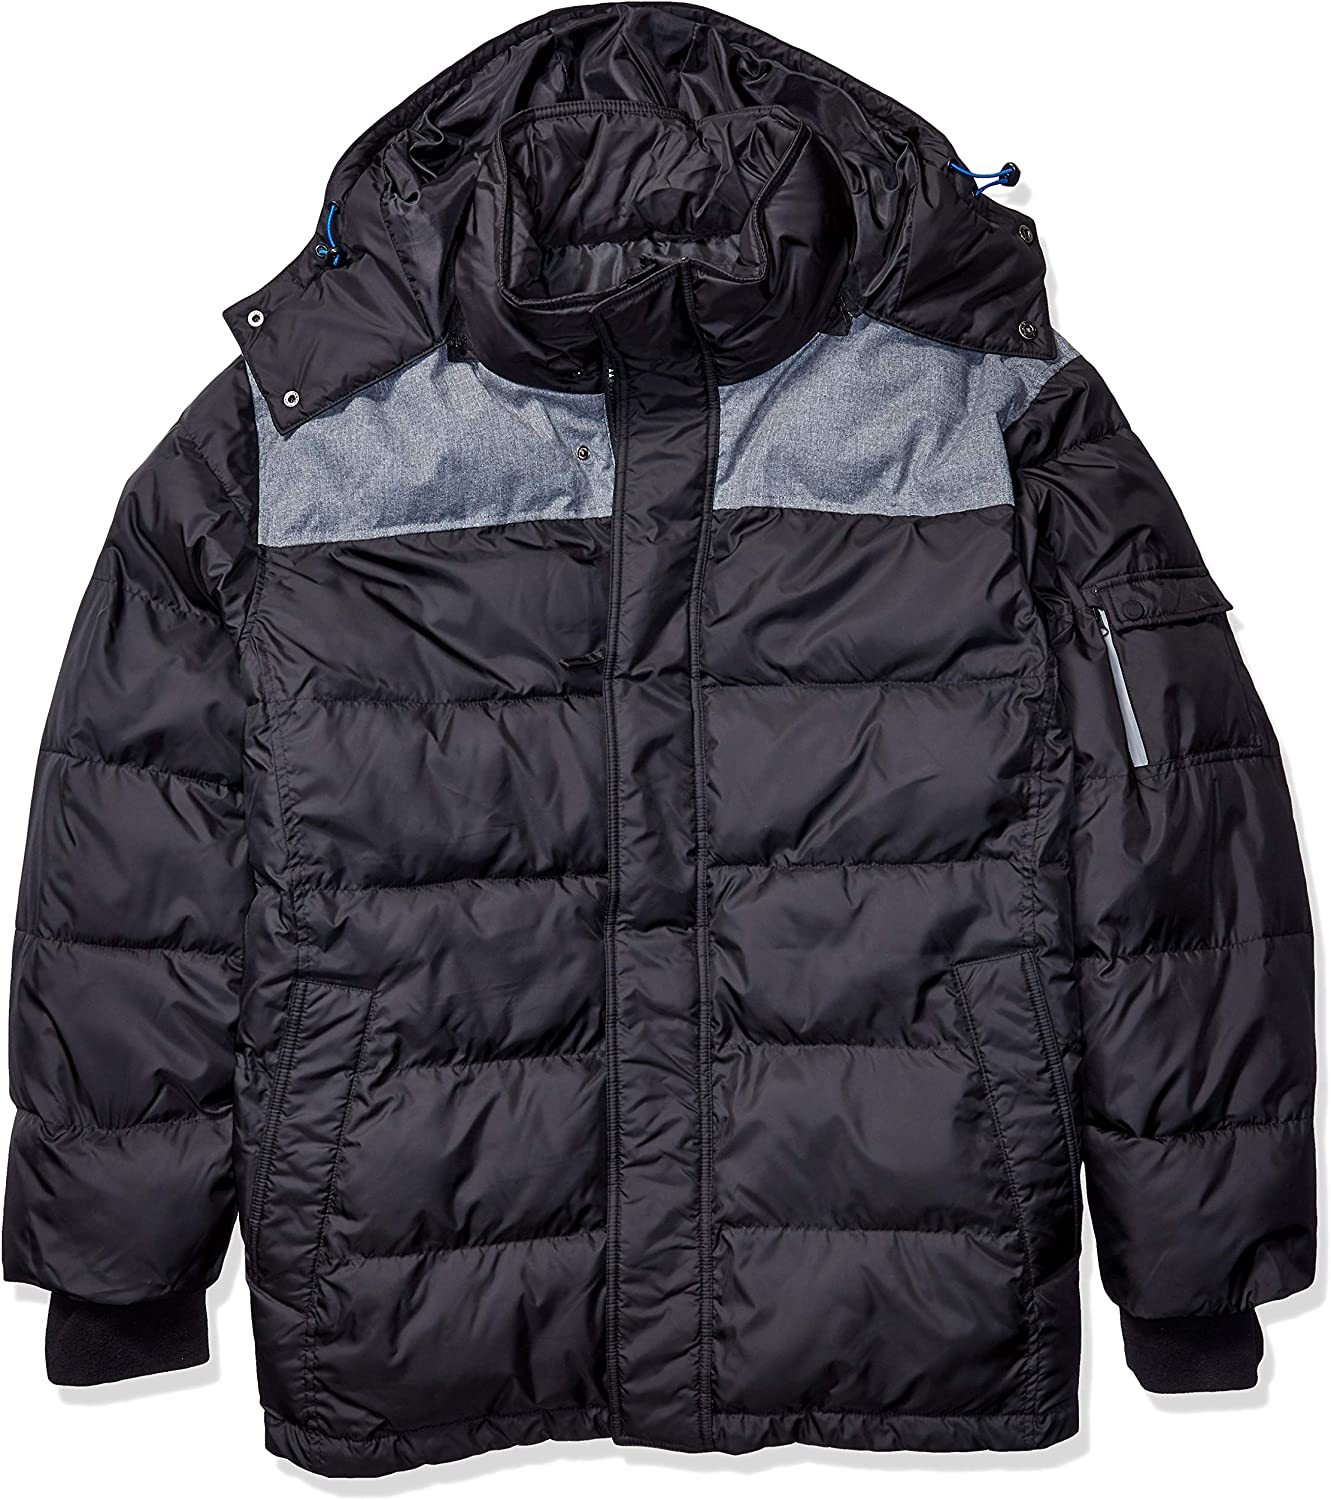 IZOD Men's Big & Tall Insulated Puffer Jacket with Removable Hood